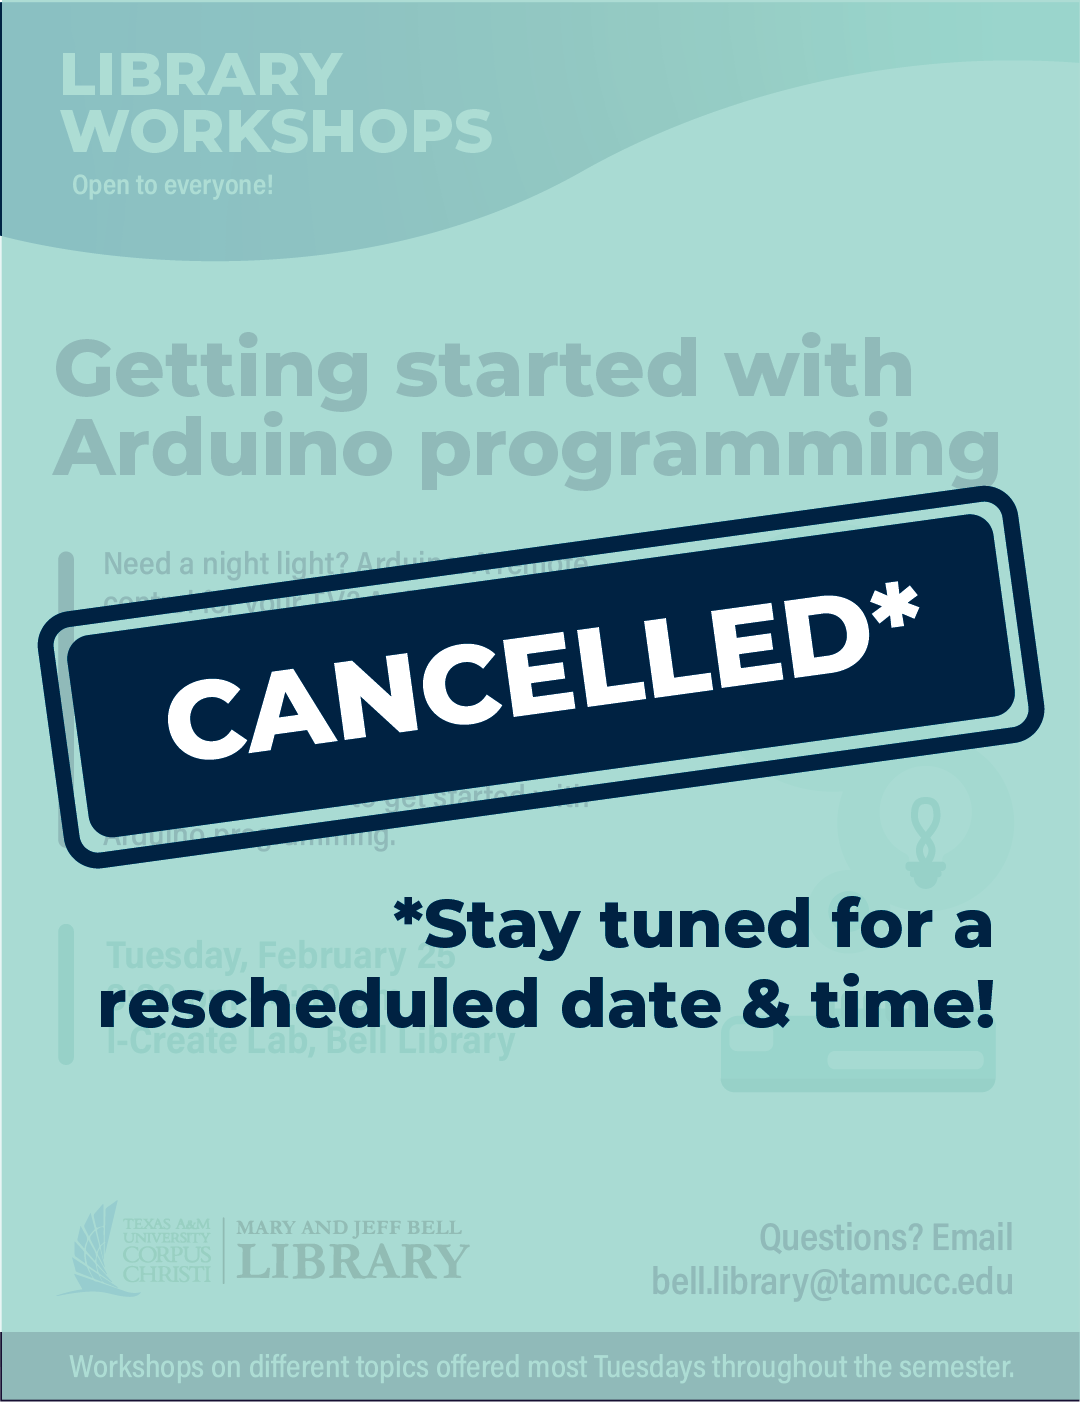 CANCELLED - Library Workshop: Getting started with Arduino programming with Louis Katz